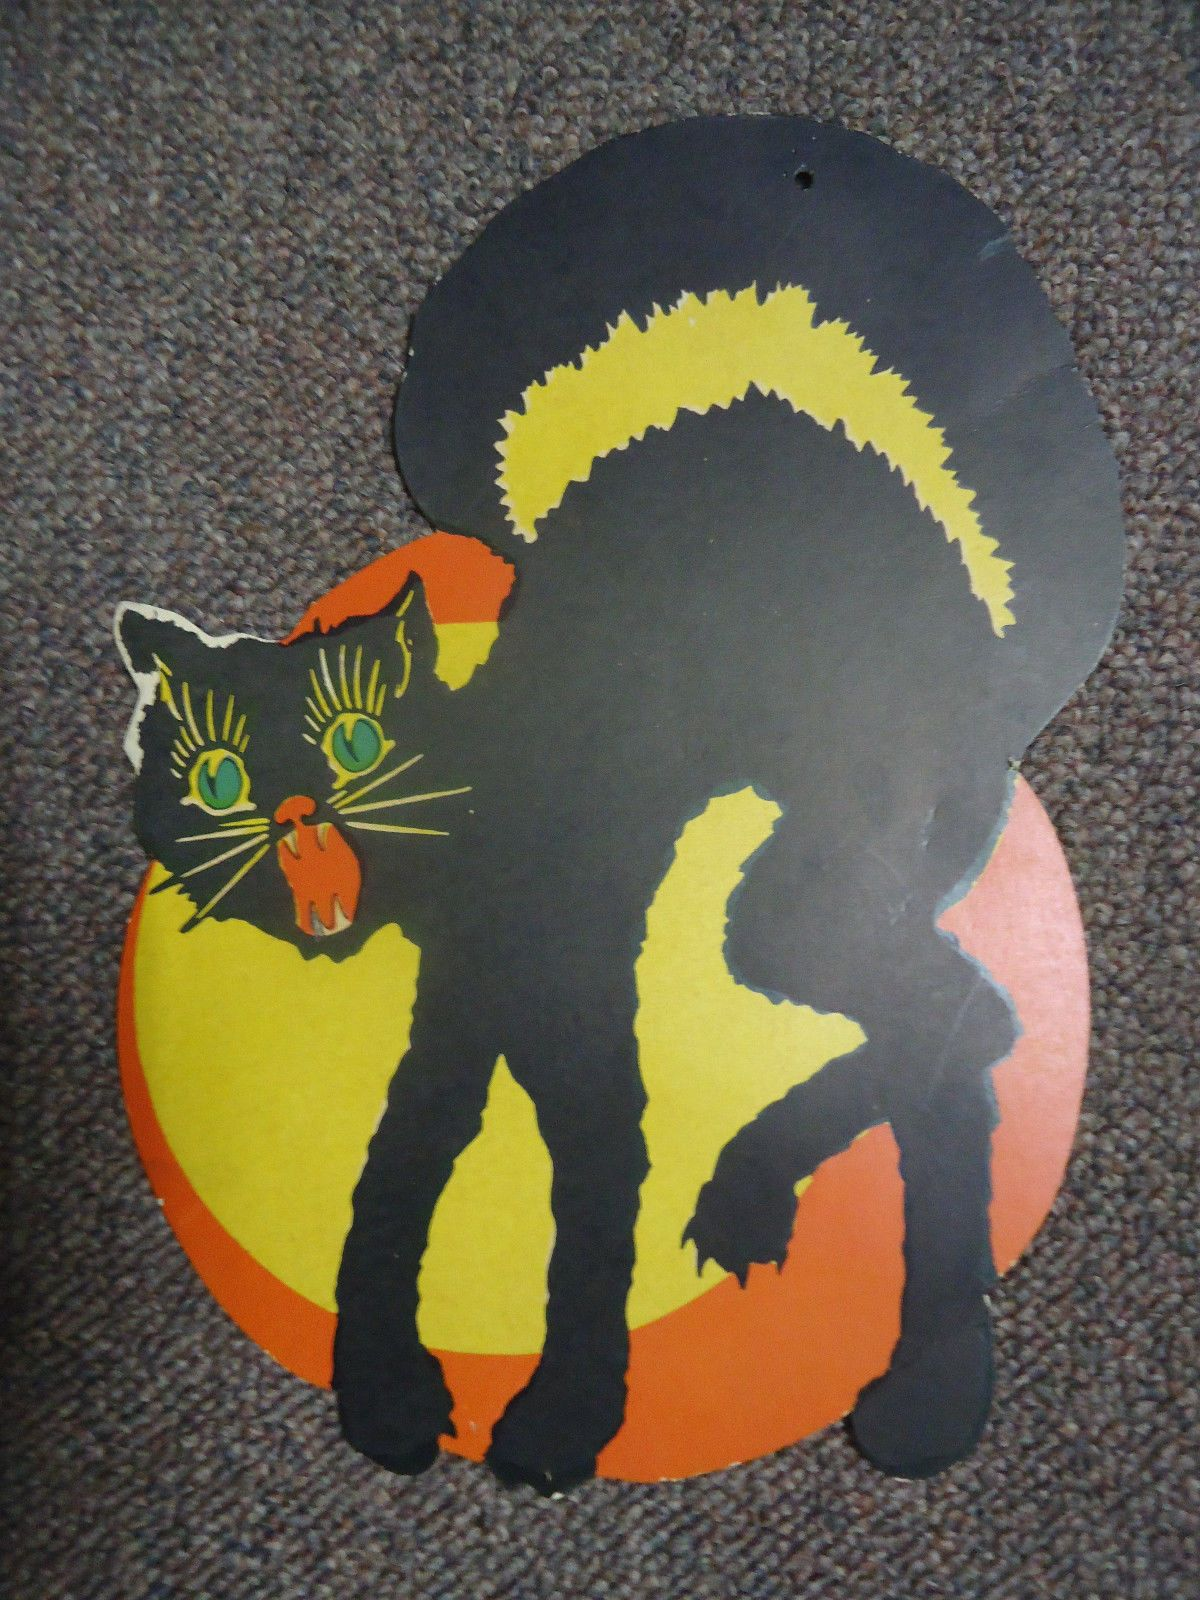 Vintage Old Halloween Die Cut Black Cat Moon Pumpkin 10 1 4 ...